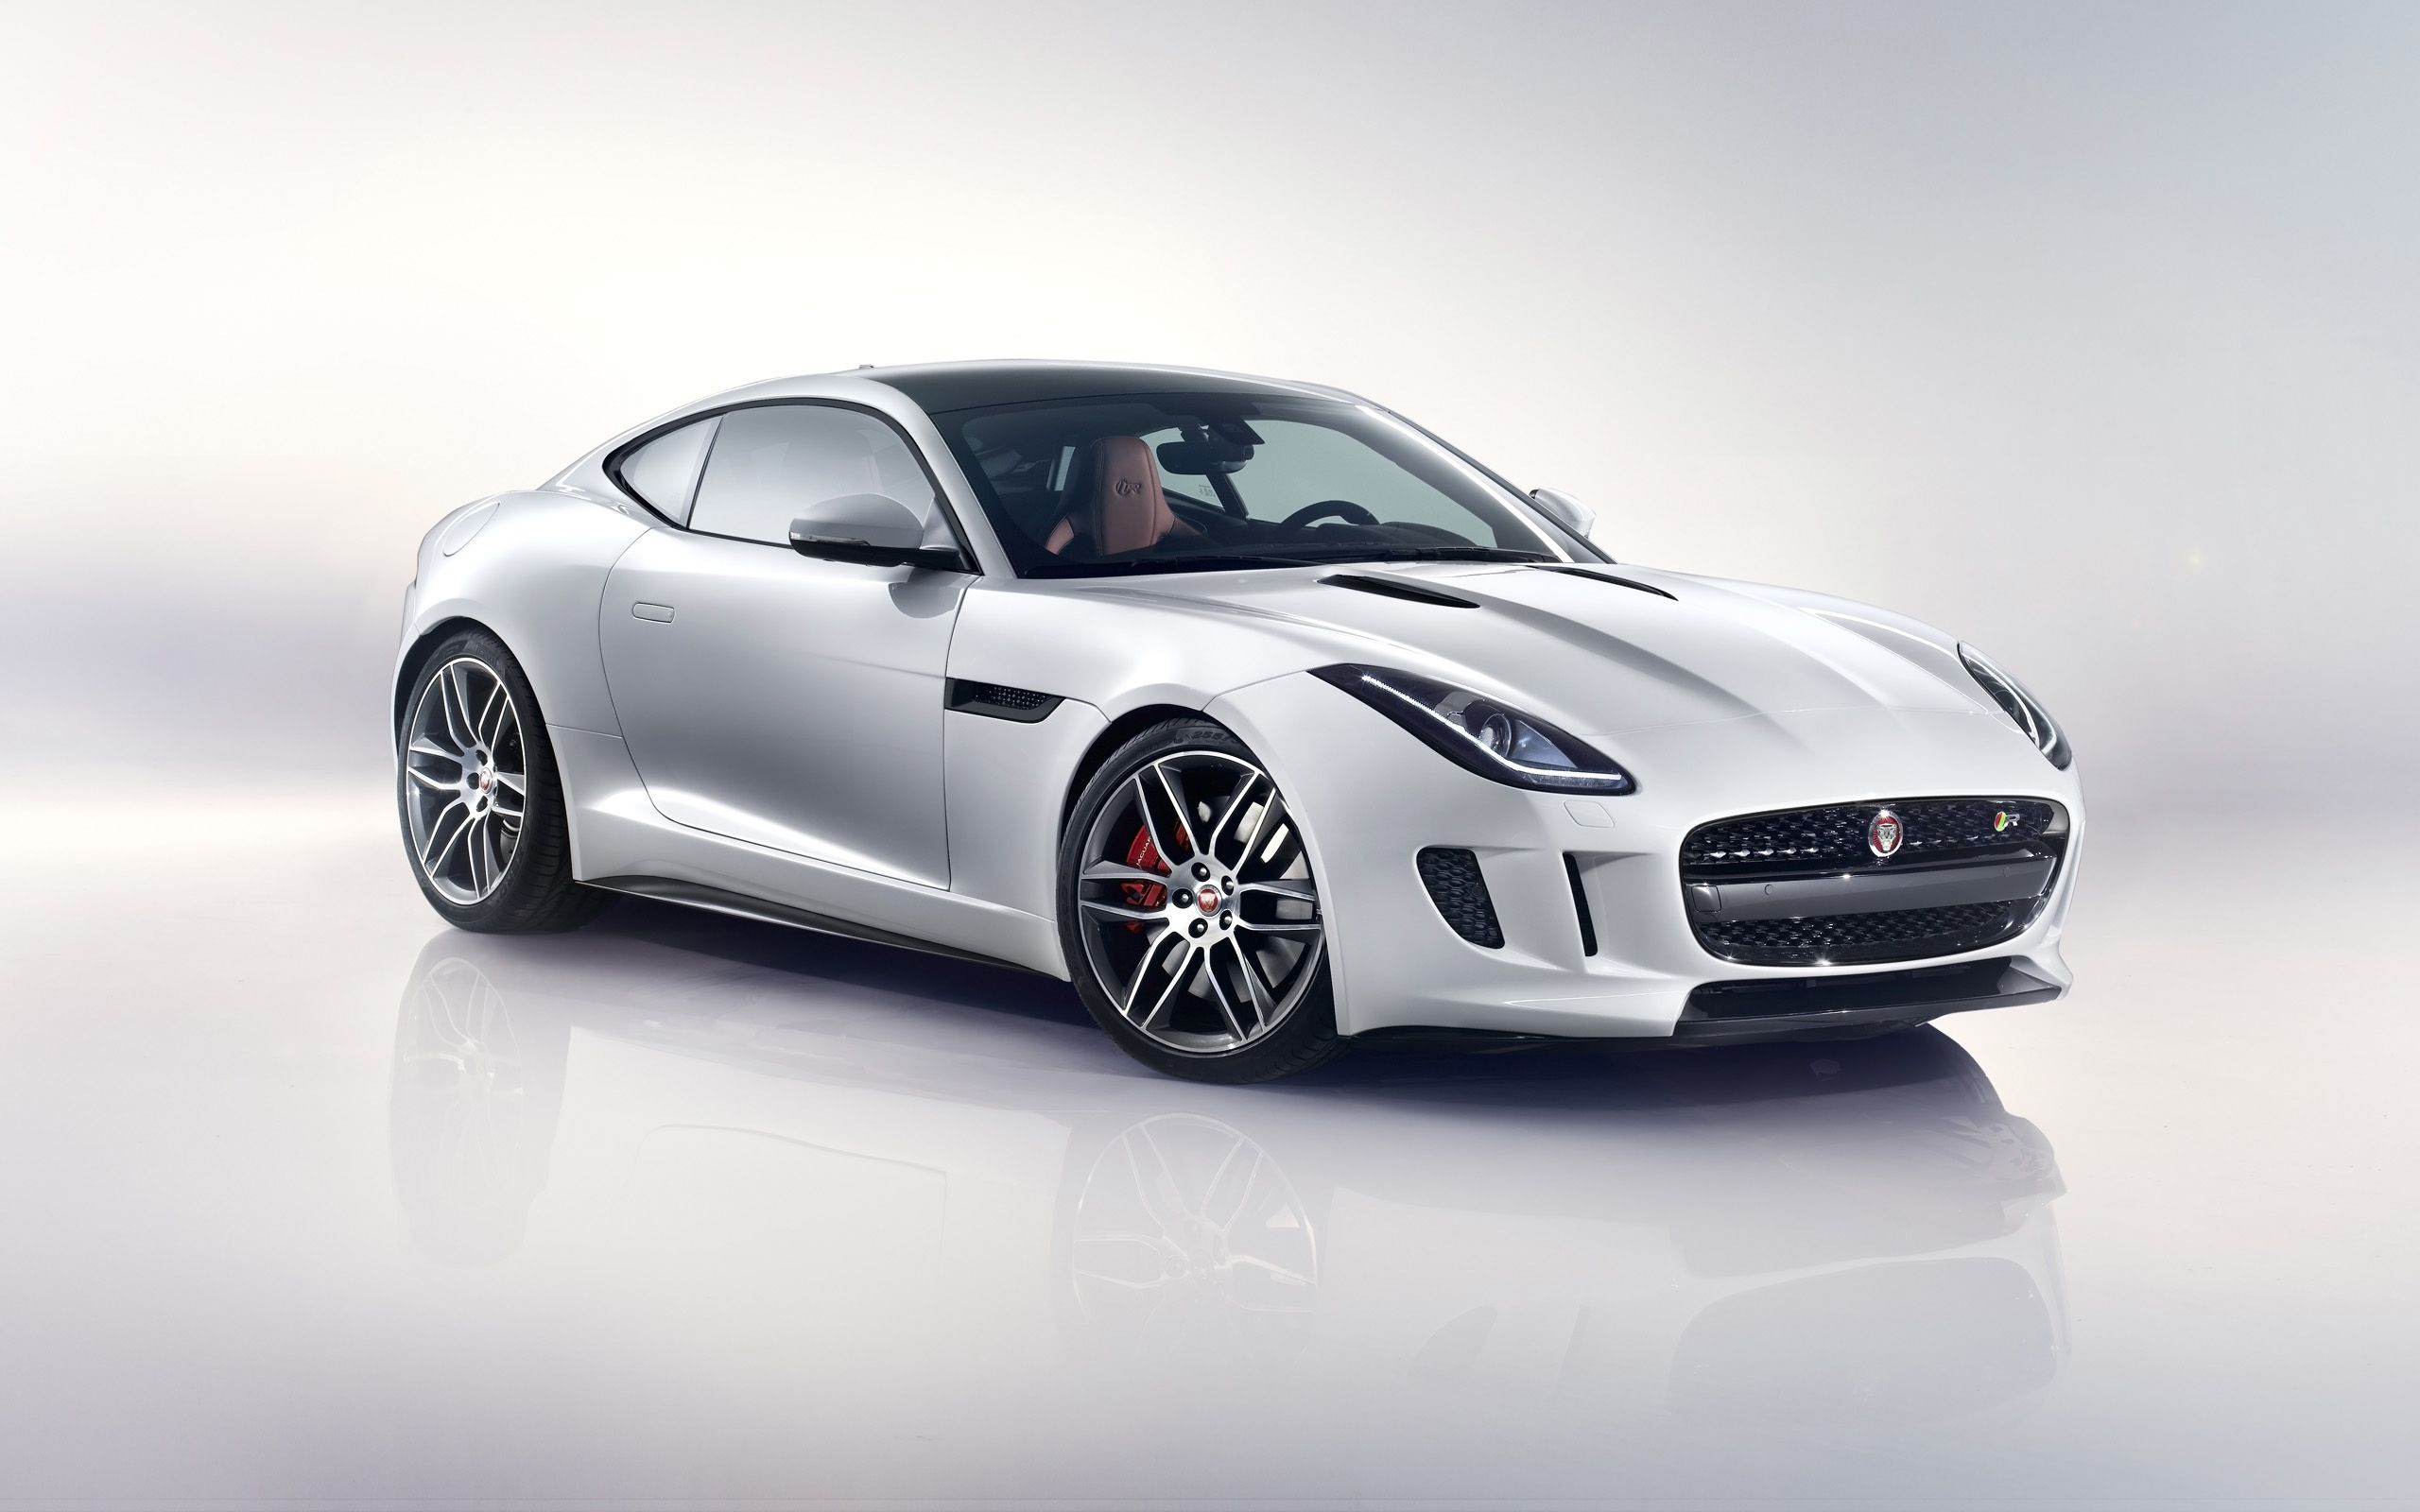 2014 Jaguar F Type R Coupe Polaris White Studio 1 2560x1600 (2560×1600)  | Car Wallpapers | Pinterest | Car Wallpapers, Cars And Hot Cars